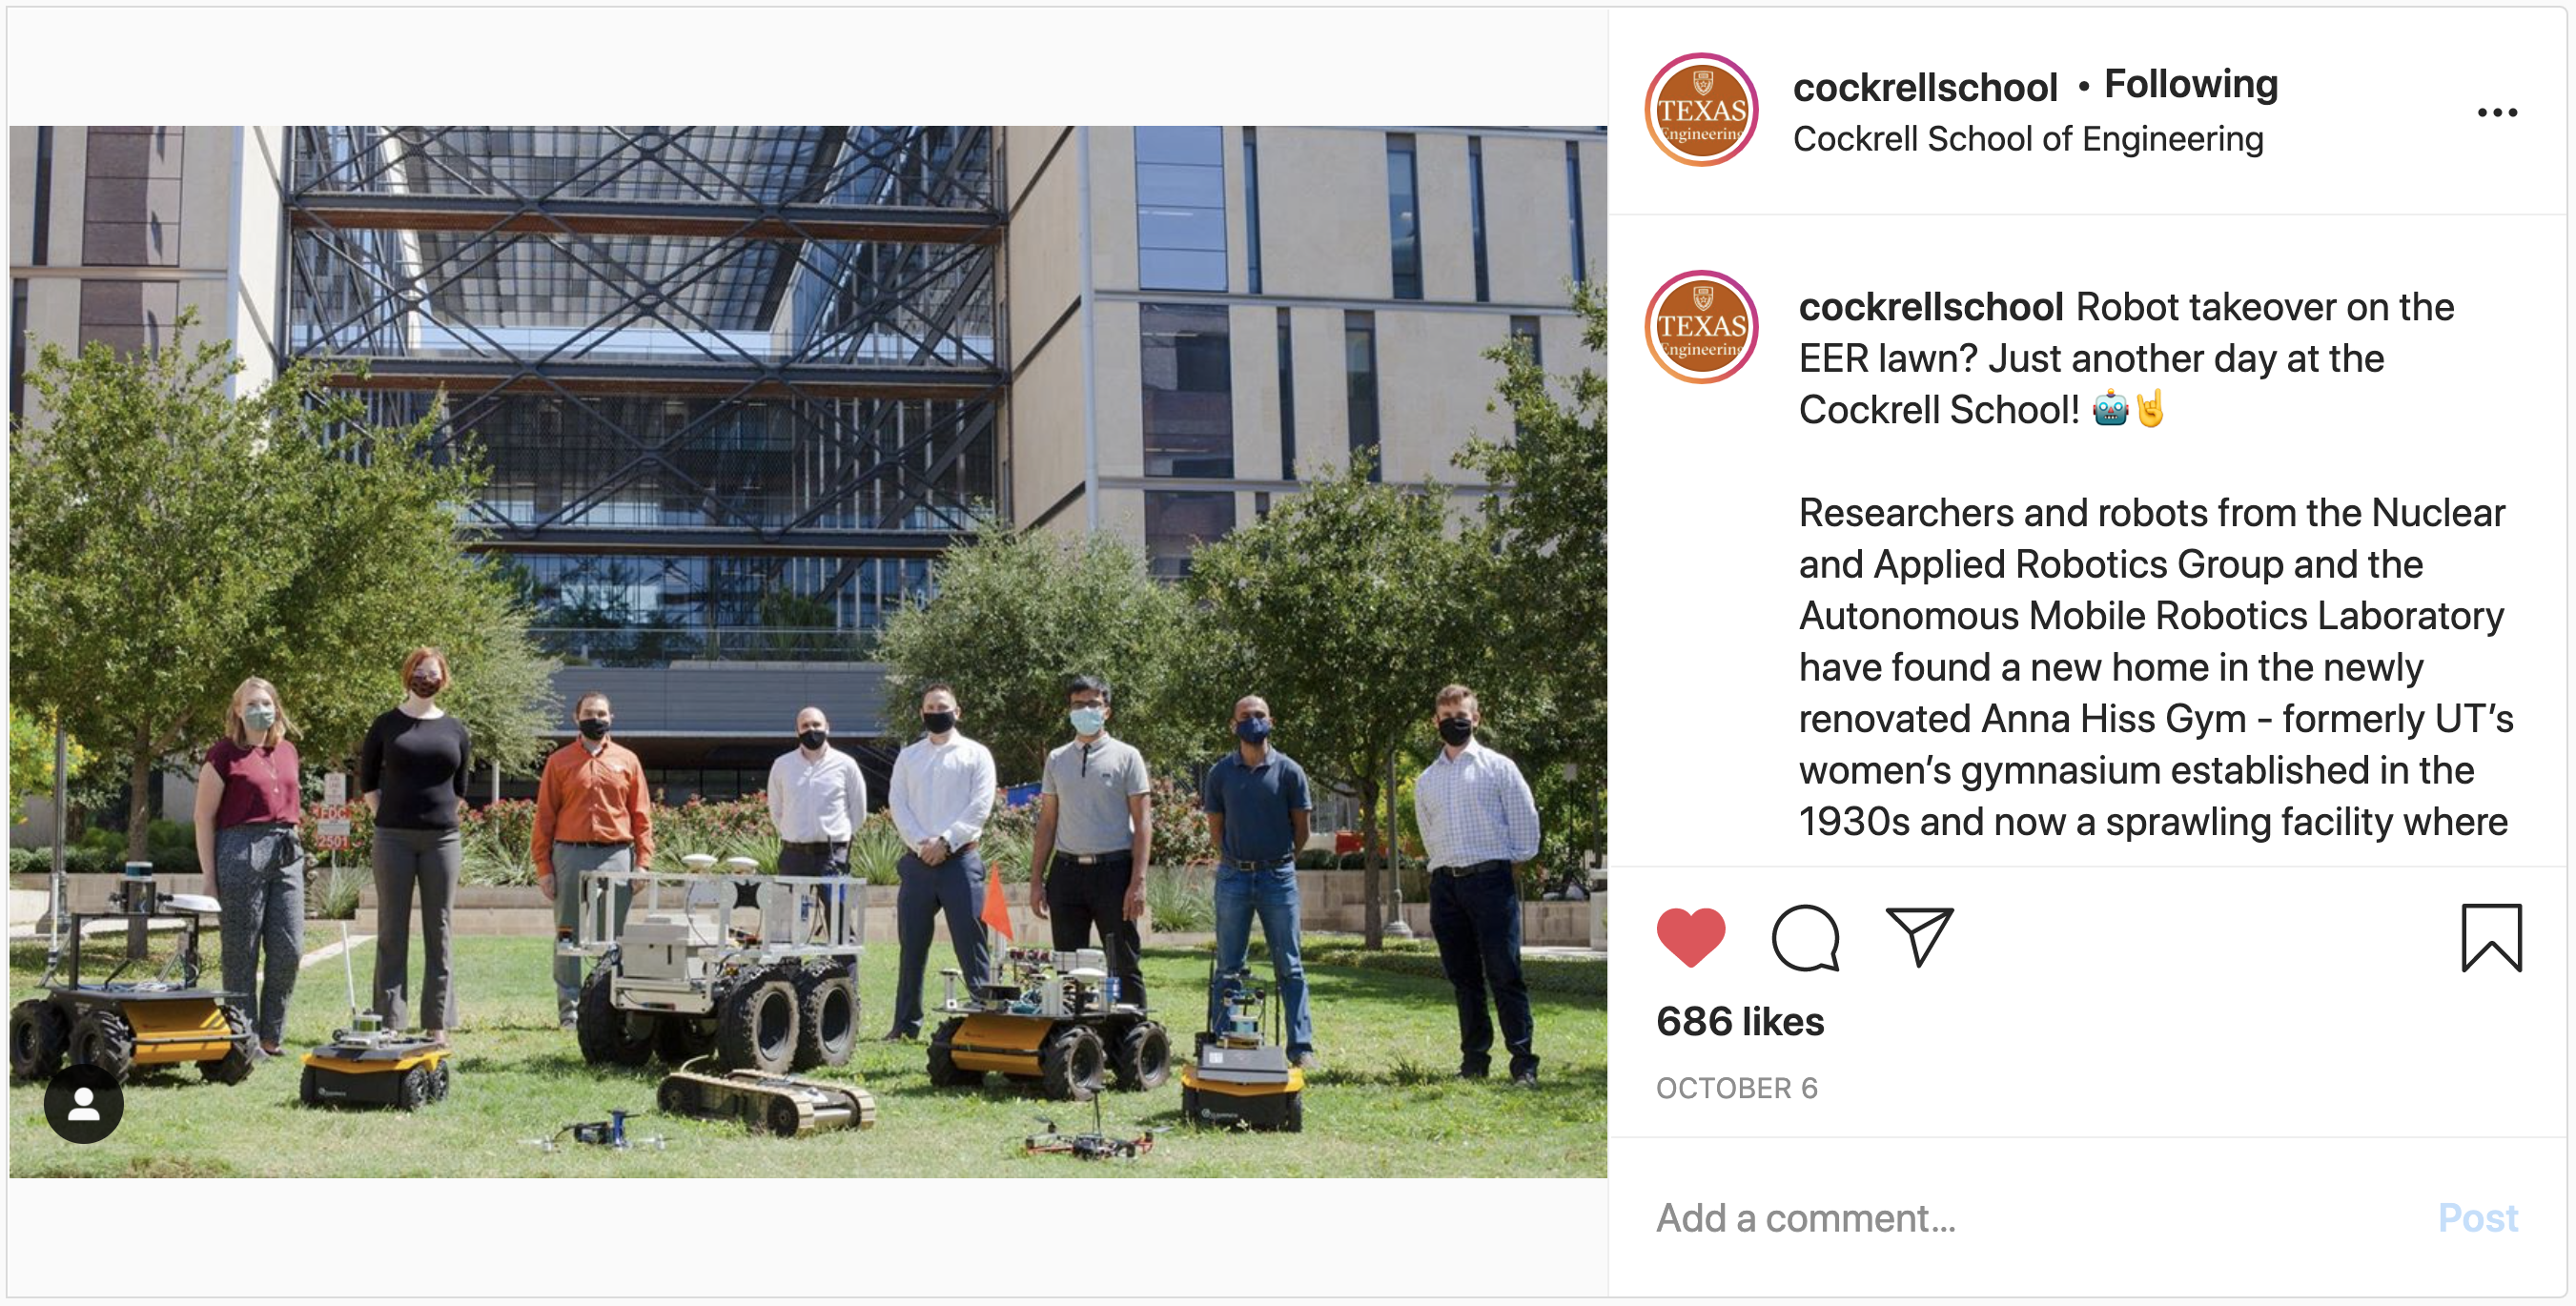 Instagram post of students with robots on EER lawn